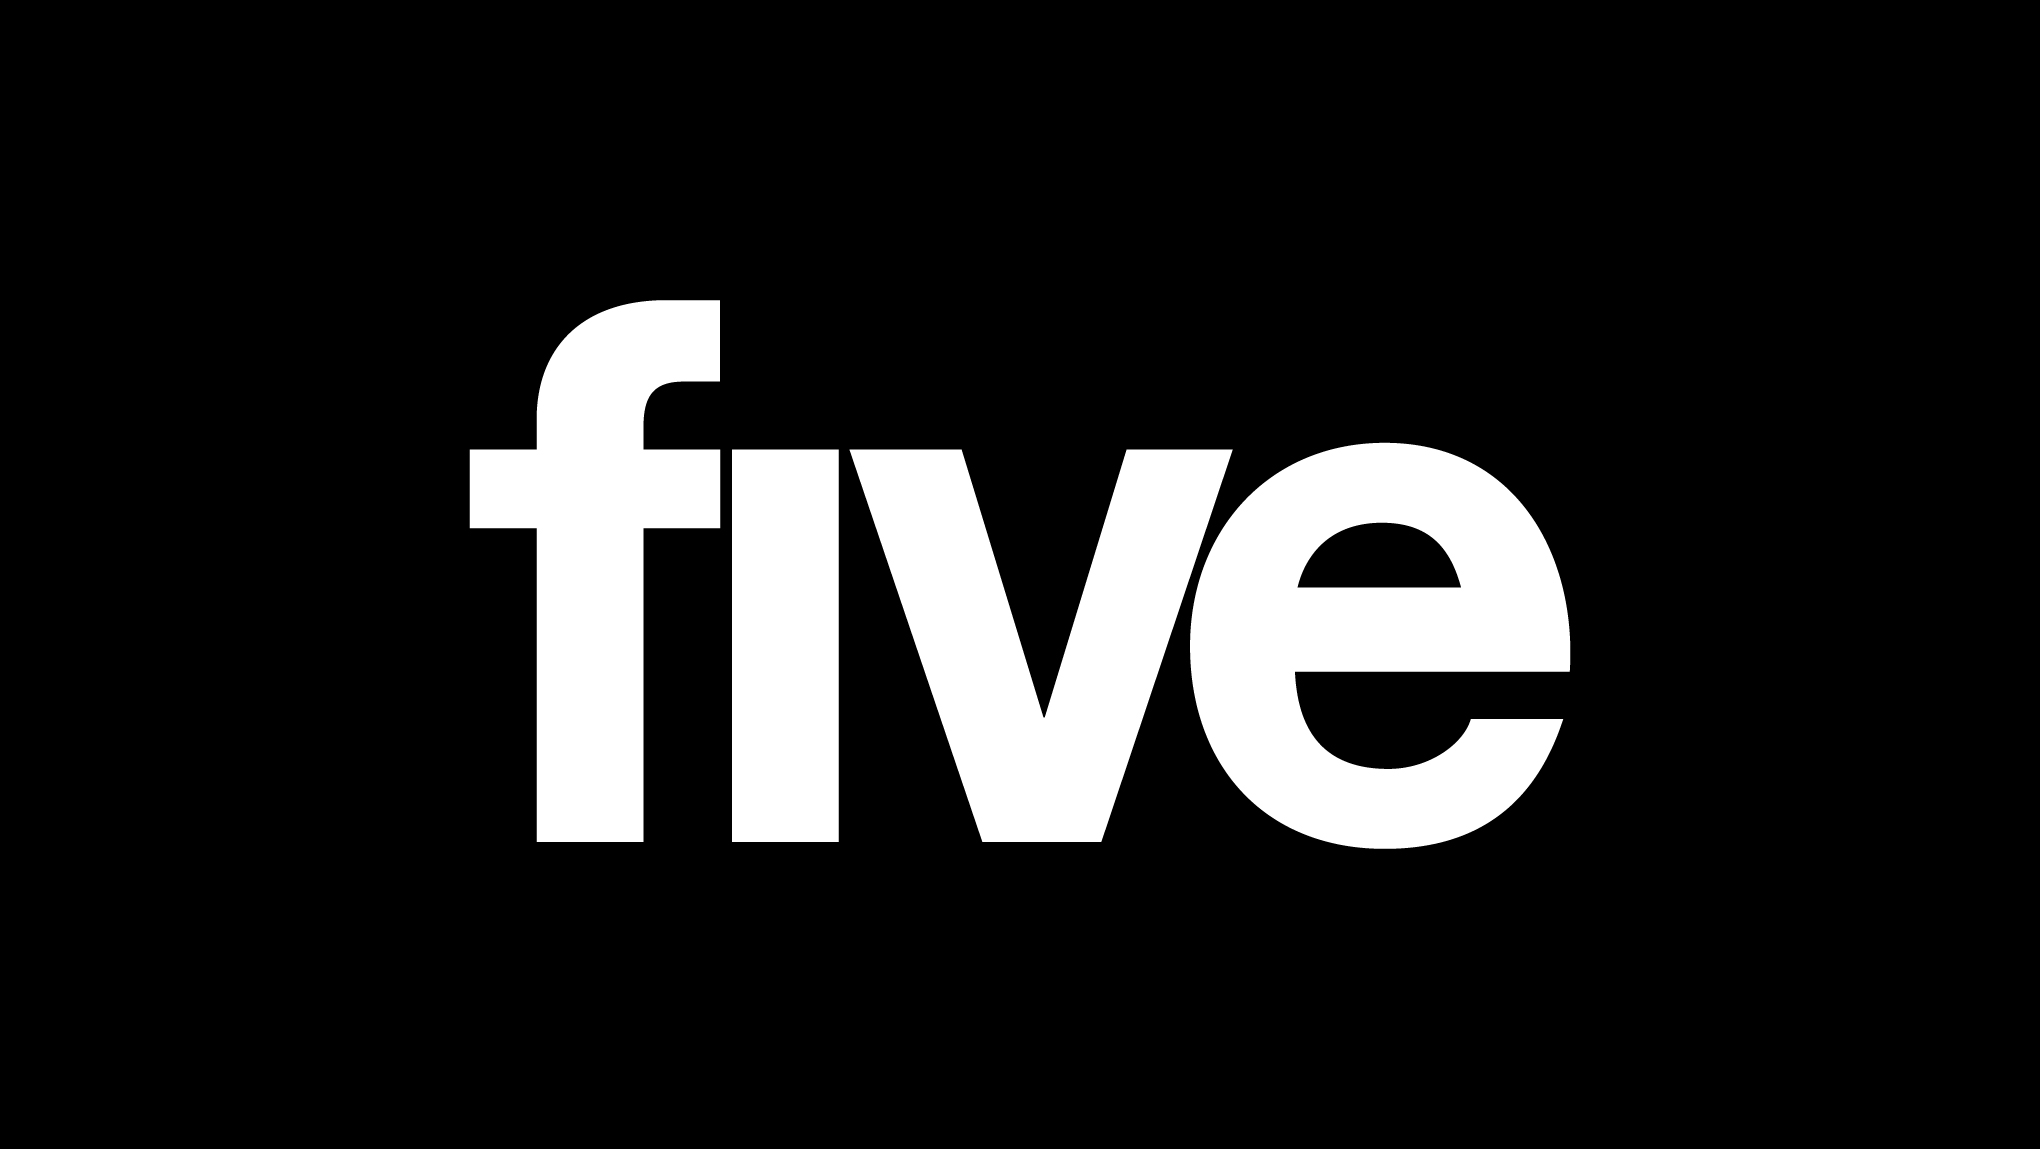 spins five logo which ran from 2002 —2008